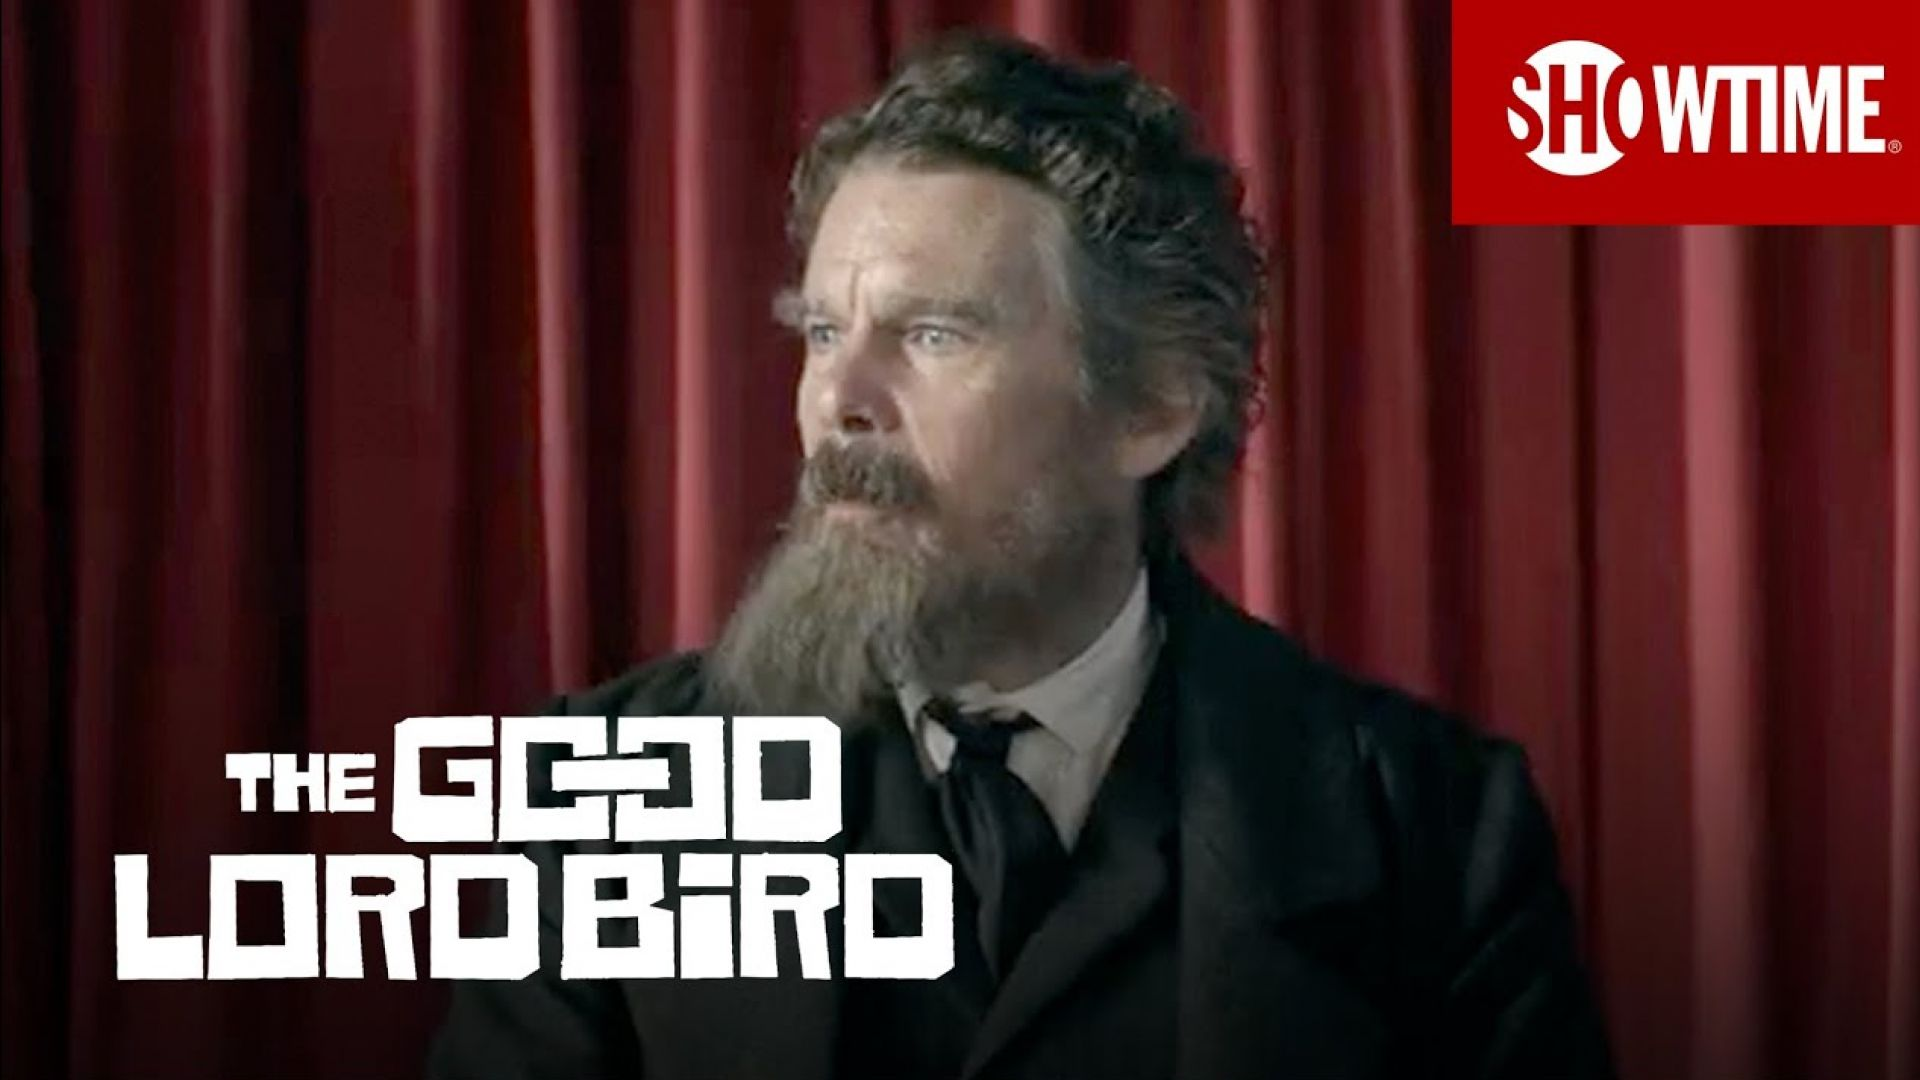 'The Good Lord Bird' teaser with Ethan Hawke (October 4, Sho